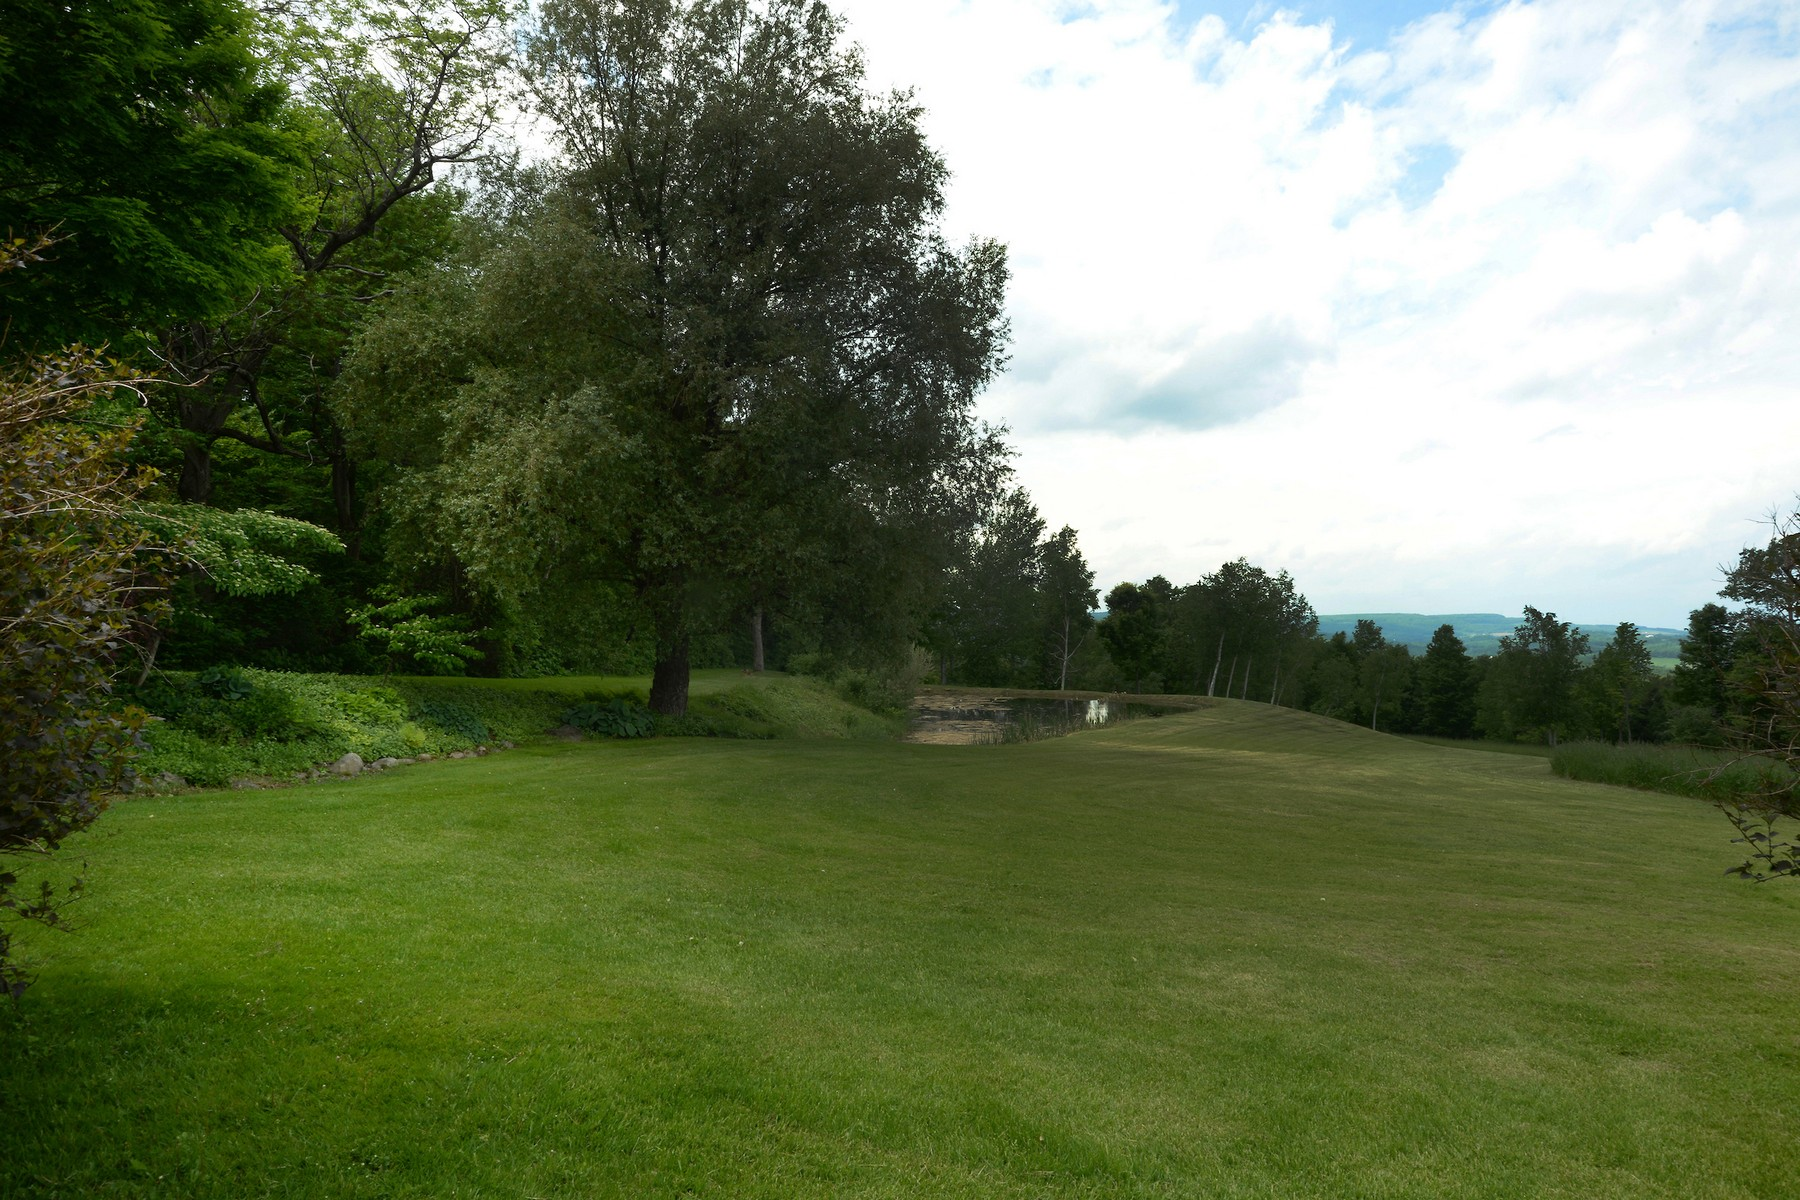 Other Residential for Sale at Endless Opportunities 285 Willie Oneil Rd Cherry Valley, New York 13317 United States